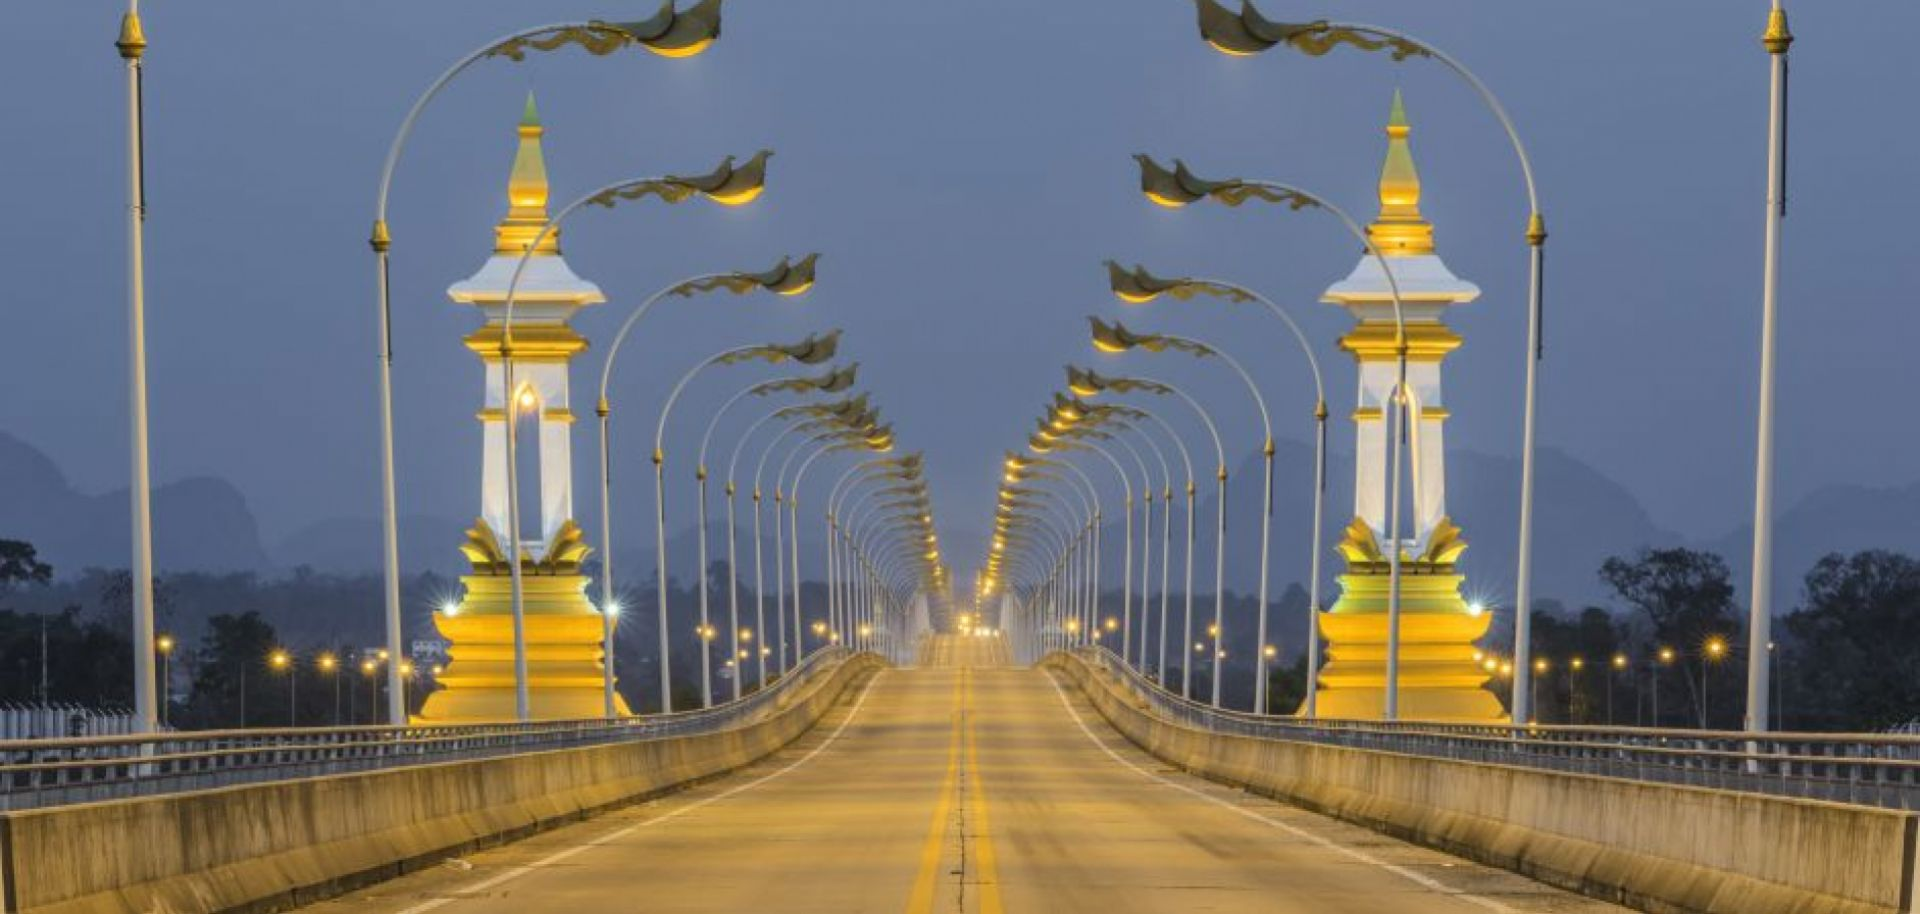 To sustain their economic growth, the members of the Association of Southeast Asian Nations must build infrastructure to bridge their divides -- a need that fits neatly with China's ambitions in the region through the Belt and Road Initiative.